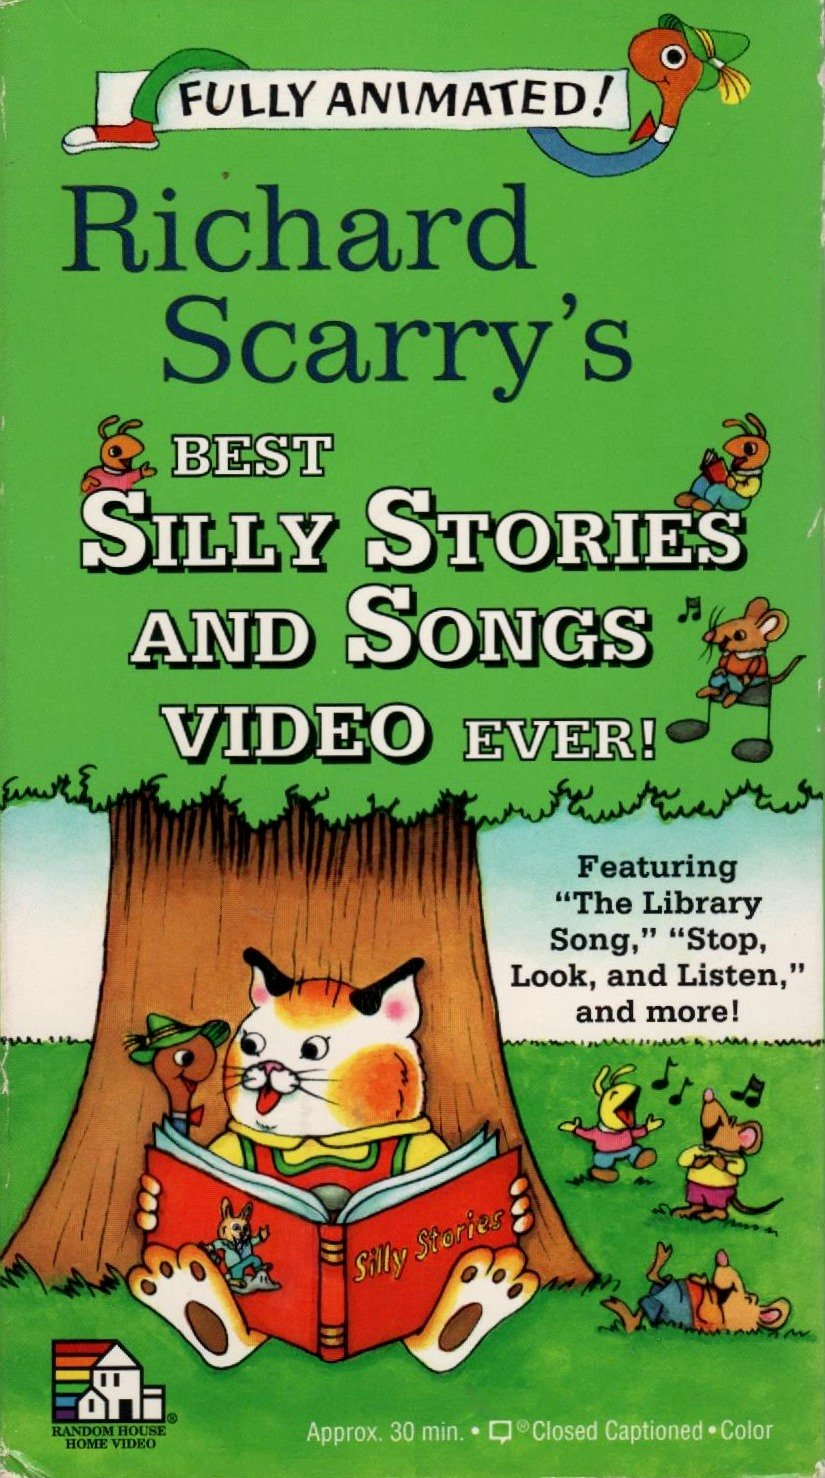 Richard Scarry's Best Silly Stories and Songs Video Ever! (1994 VHS)